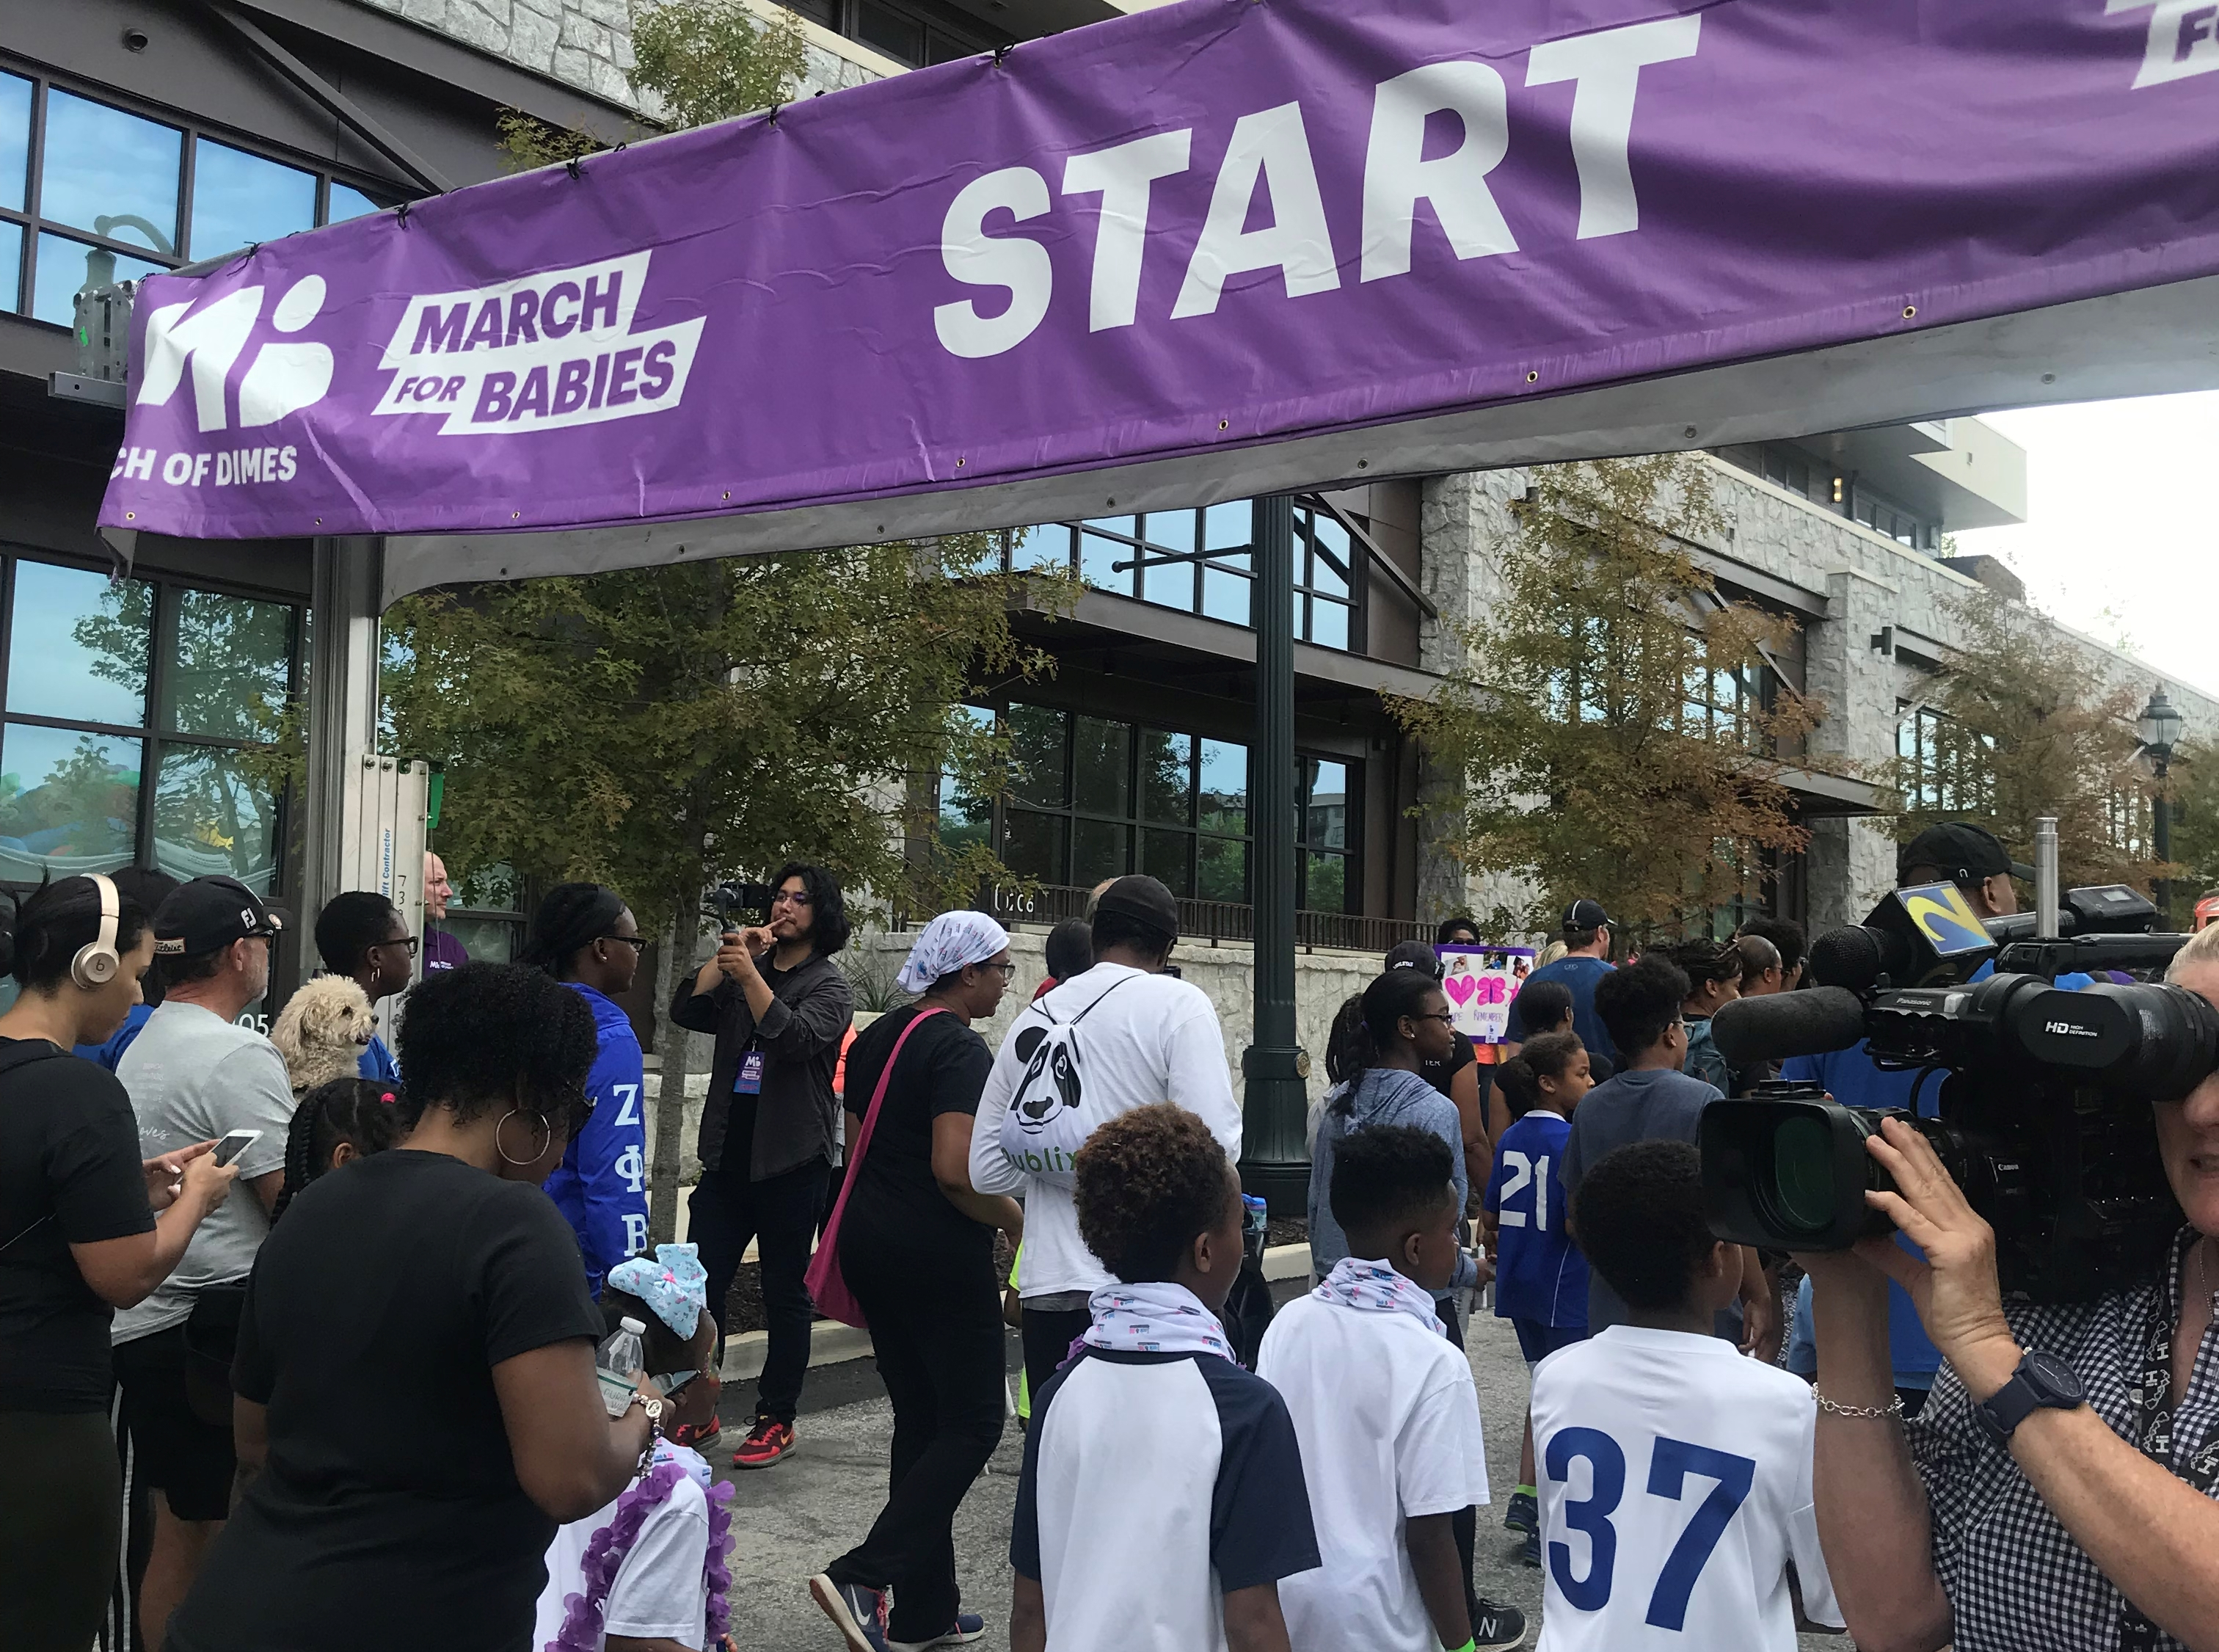 march for babies reec (13)